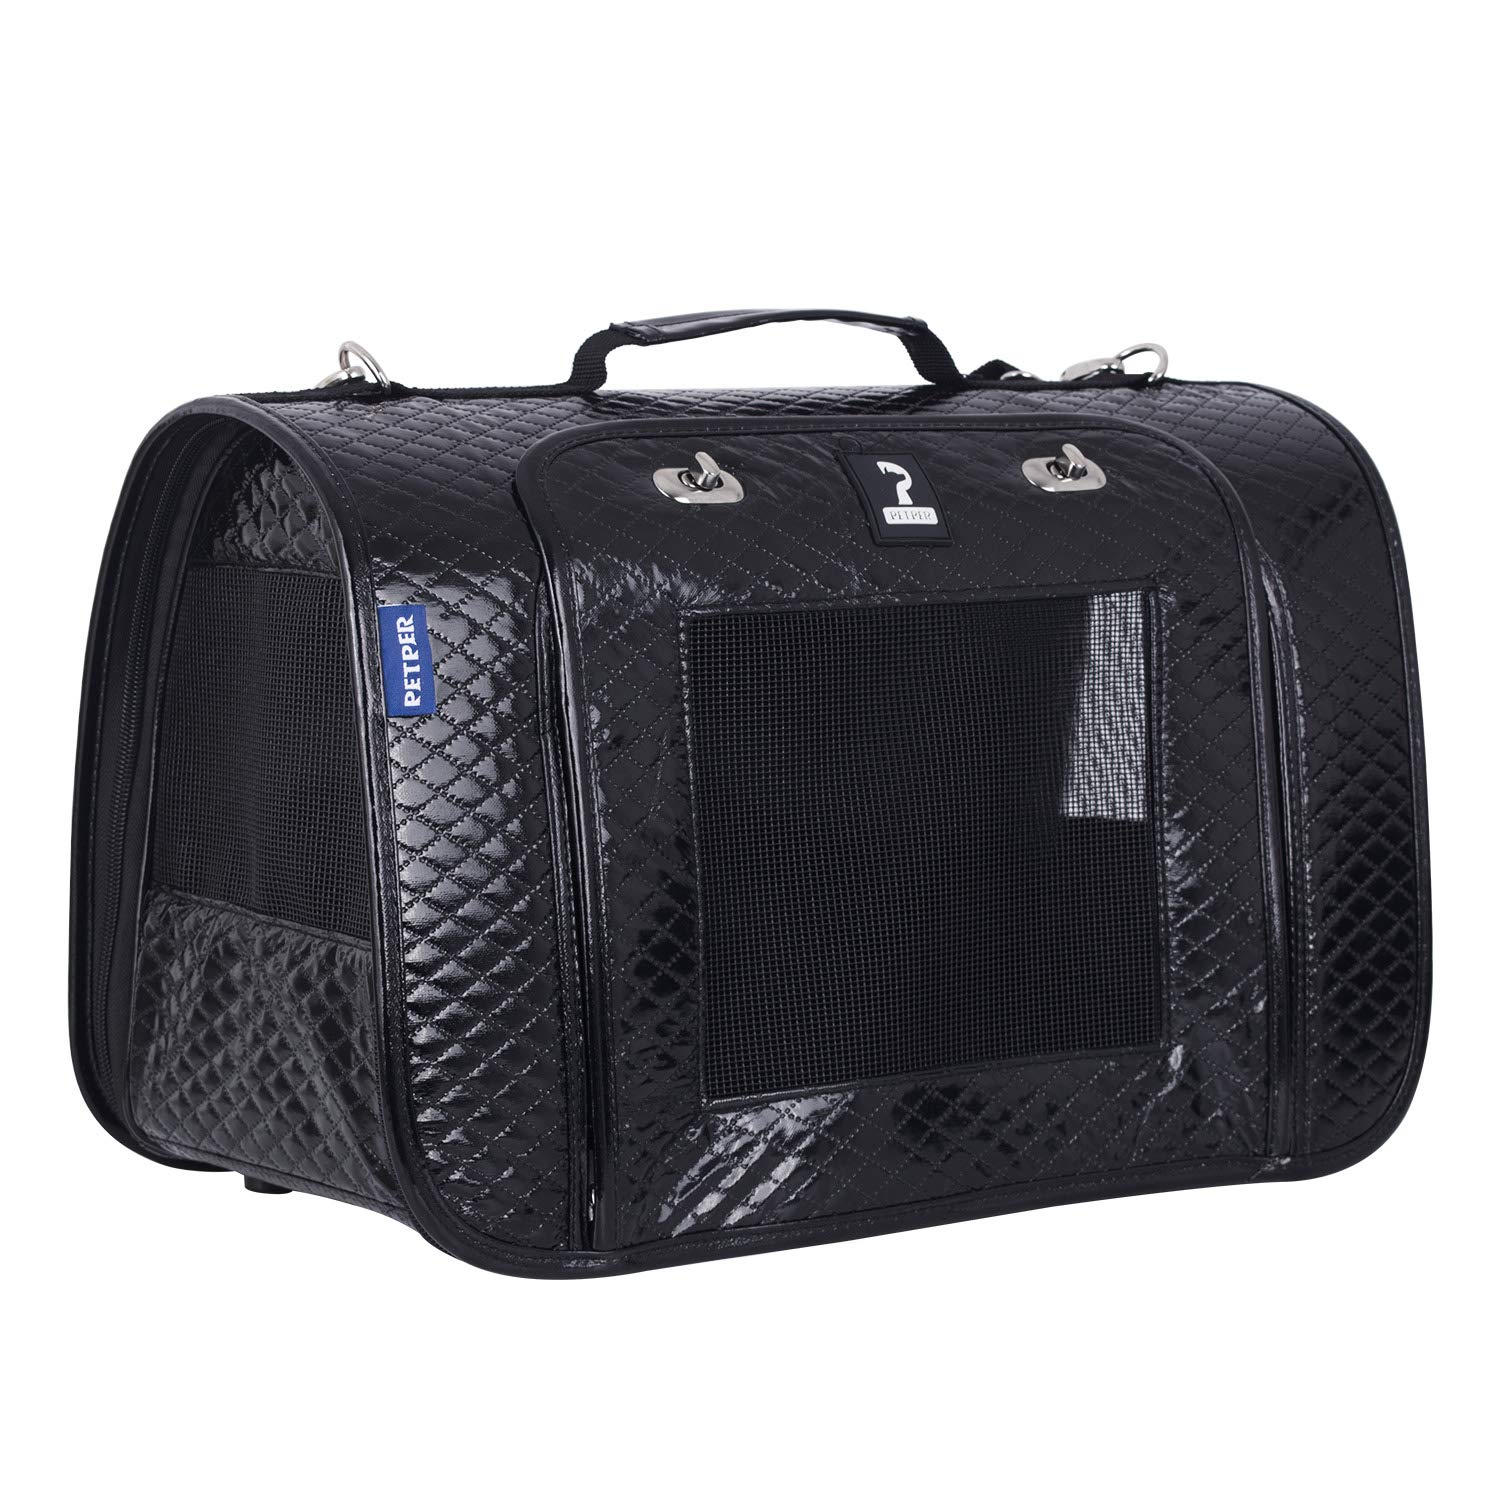 Petper CW-125 Cat Carrier PU Leather Pet Carrier Designed for Cats, Small Dogs, Kittens, Puppies Pet Travel Carrying Handbag for Outdoor Travel Walking Hiking by Petper